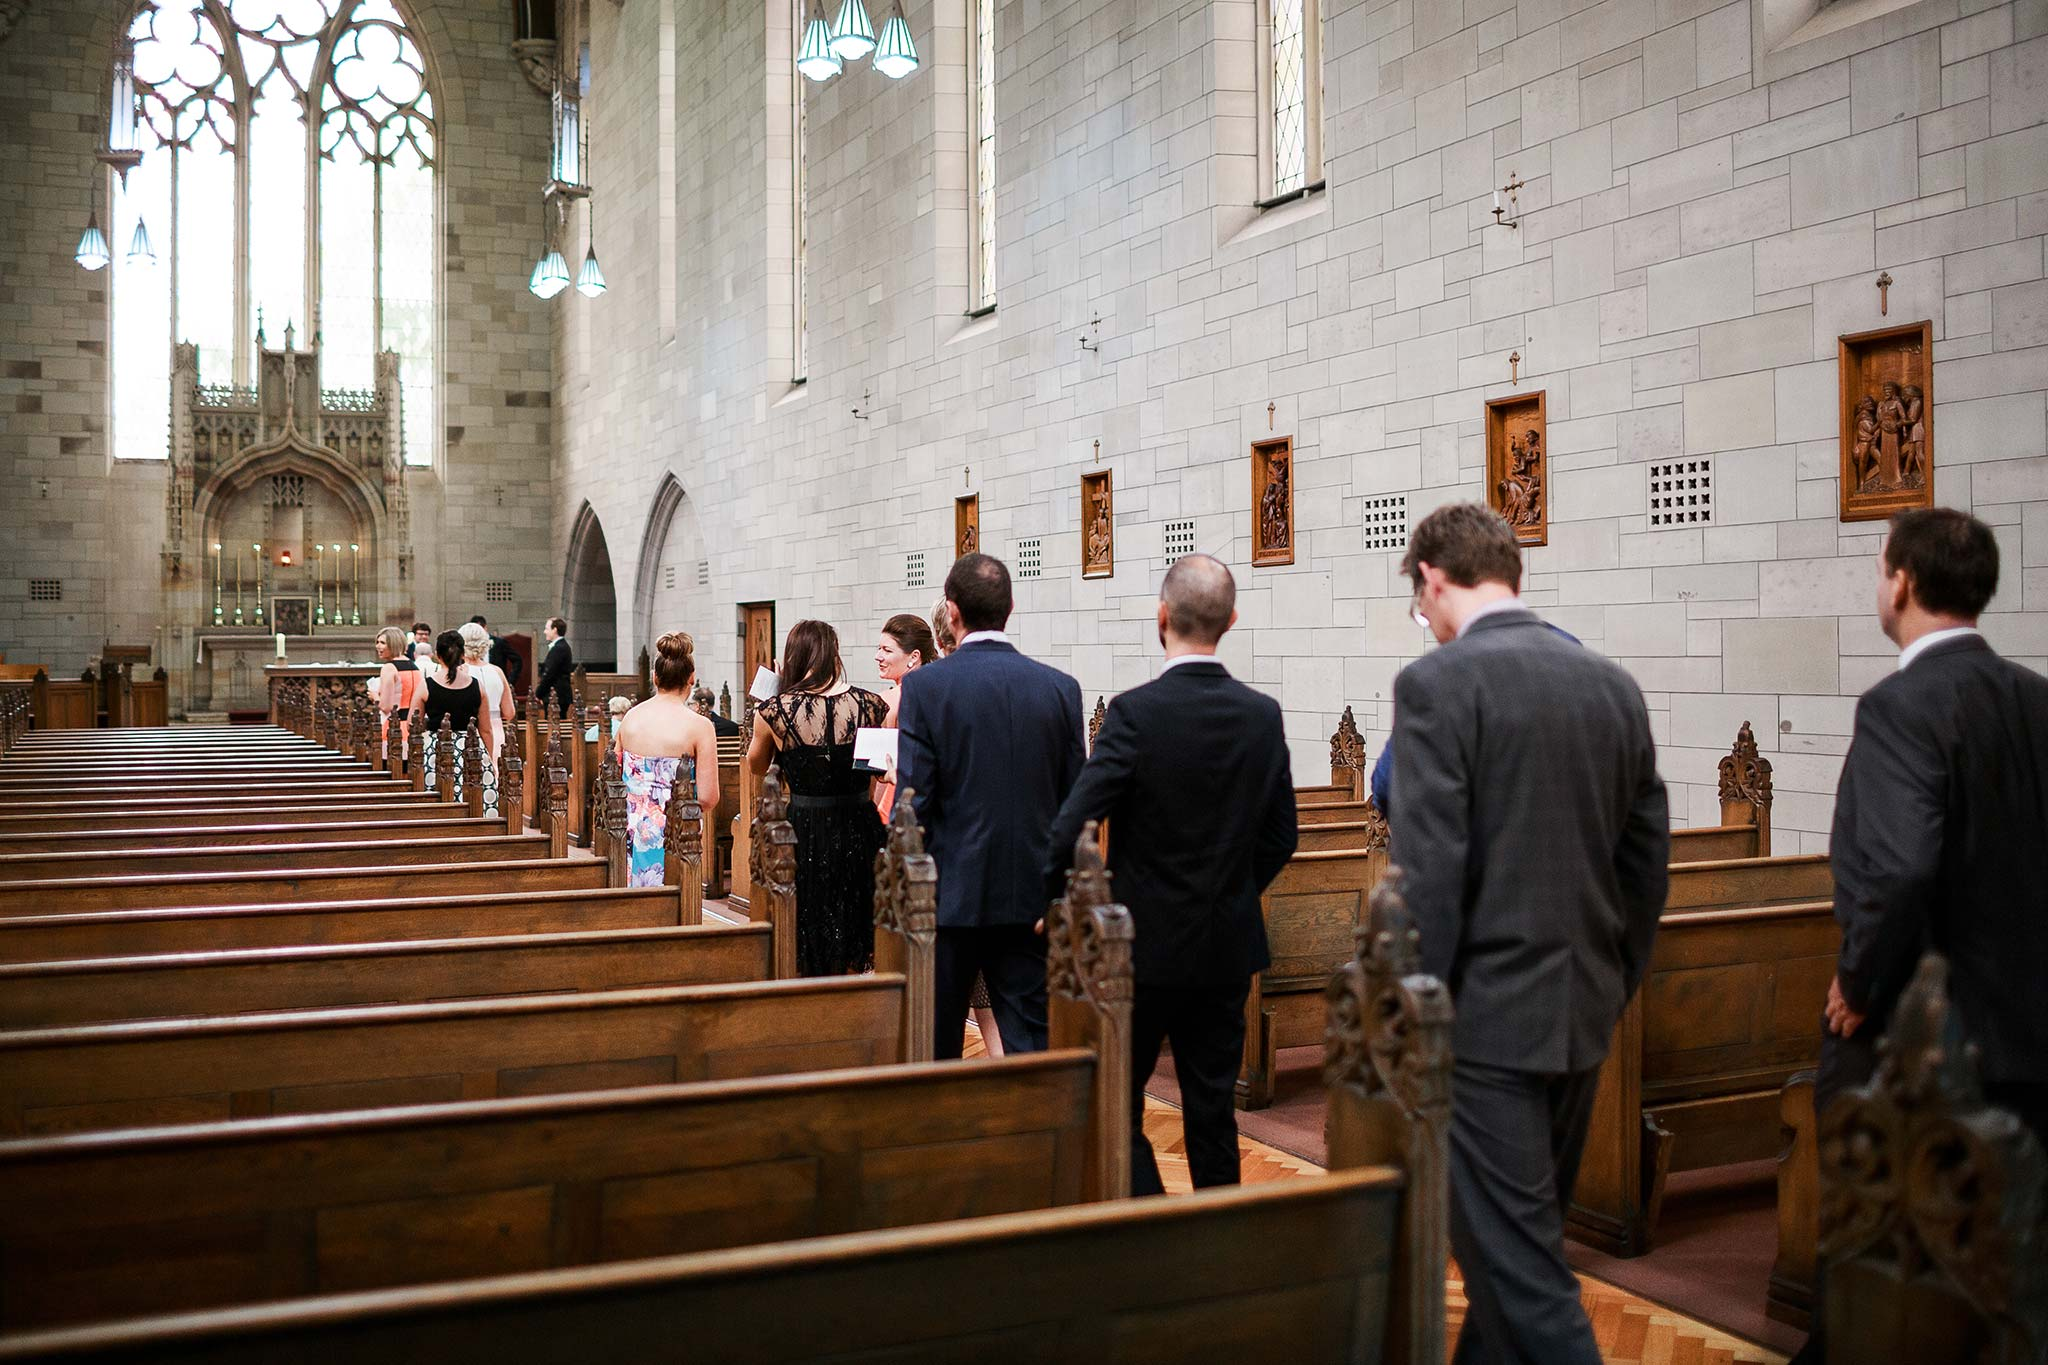 Newman-college-wedding-photographer-ceremony-guests-arrival